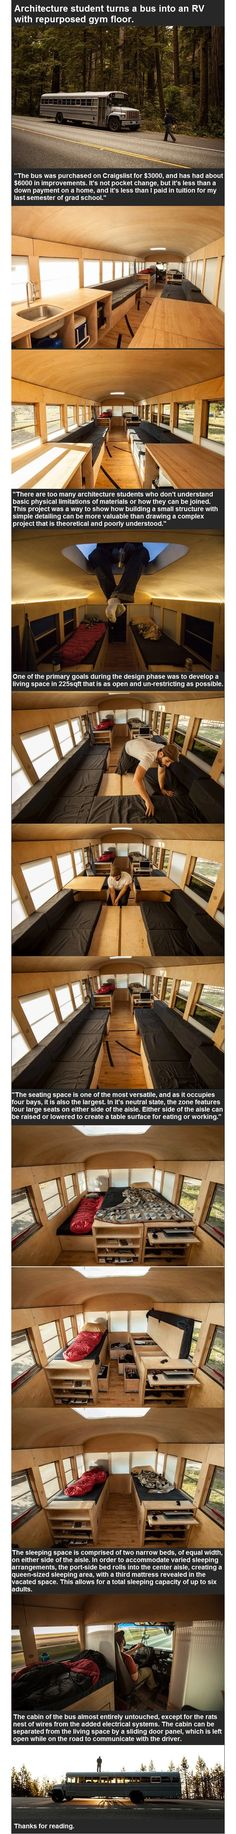 An Architecture Student Couldn't Afford Housing, makes one the most amazing things ever instead. - Imgur